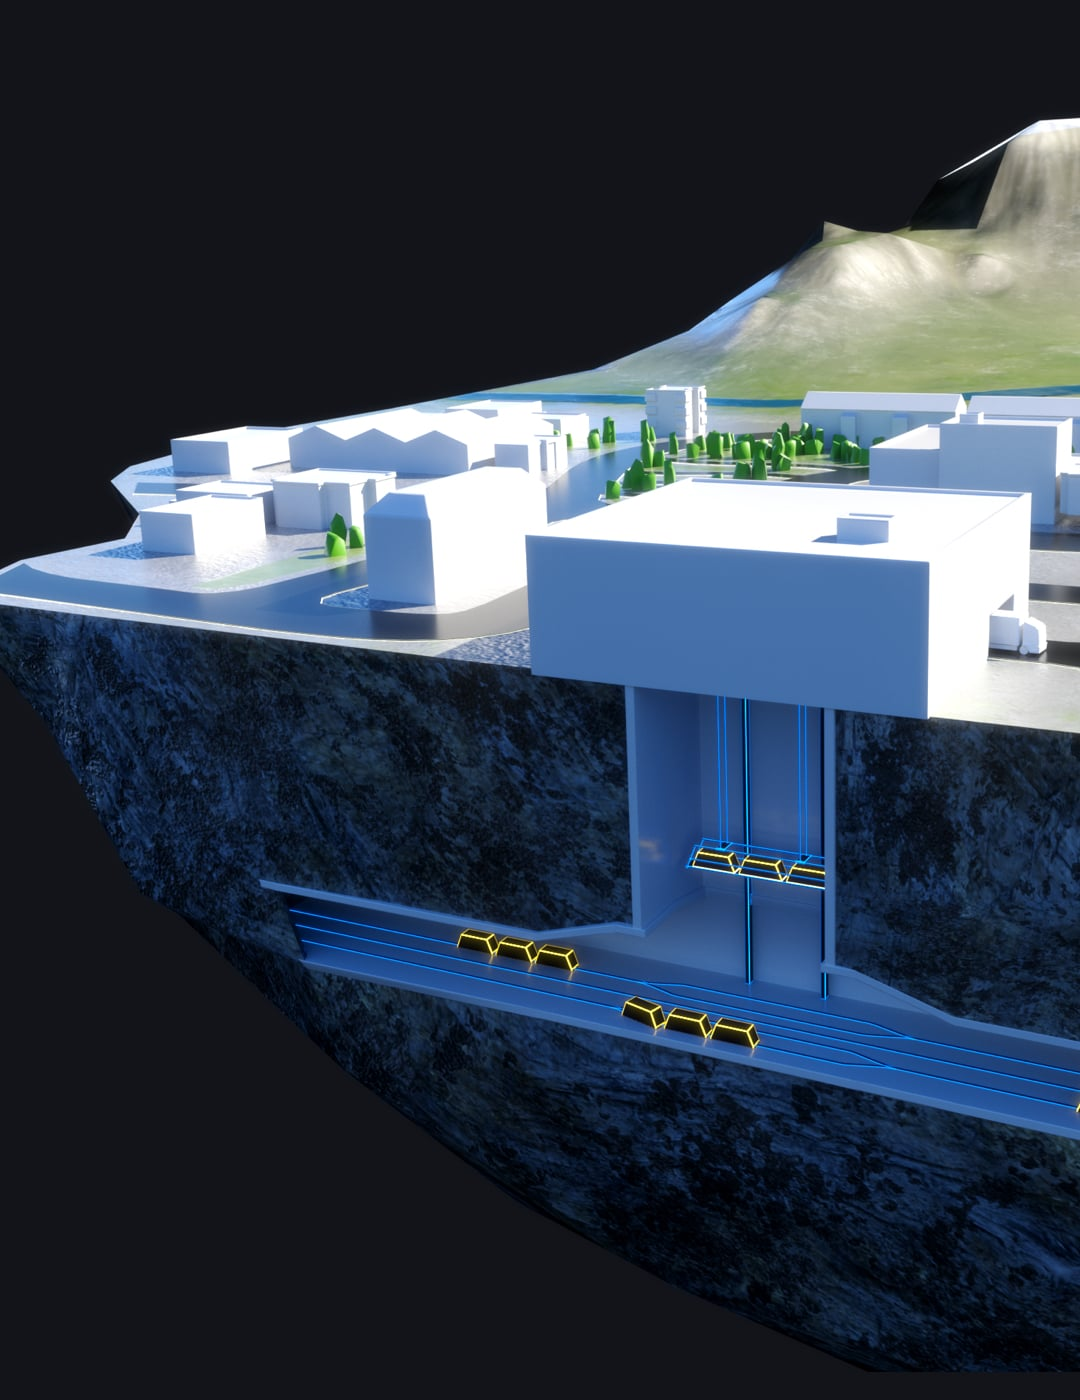 Kenza work creation project SAP and Cargo Sous Terrain landscape and underground vehicles in virtual reality